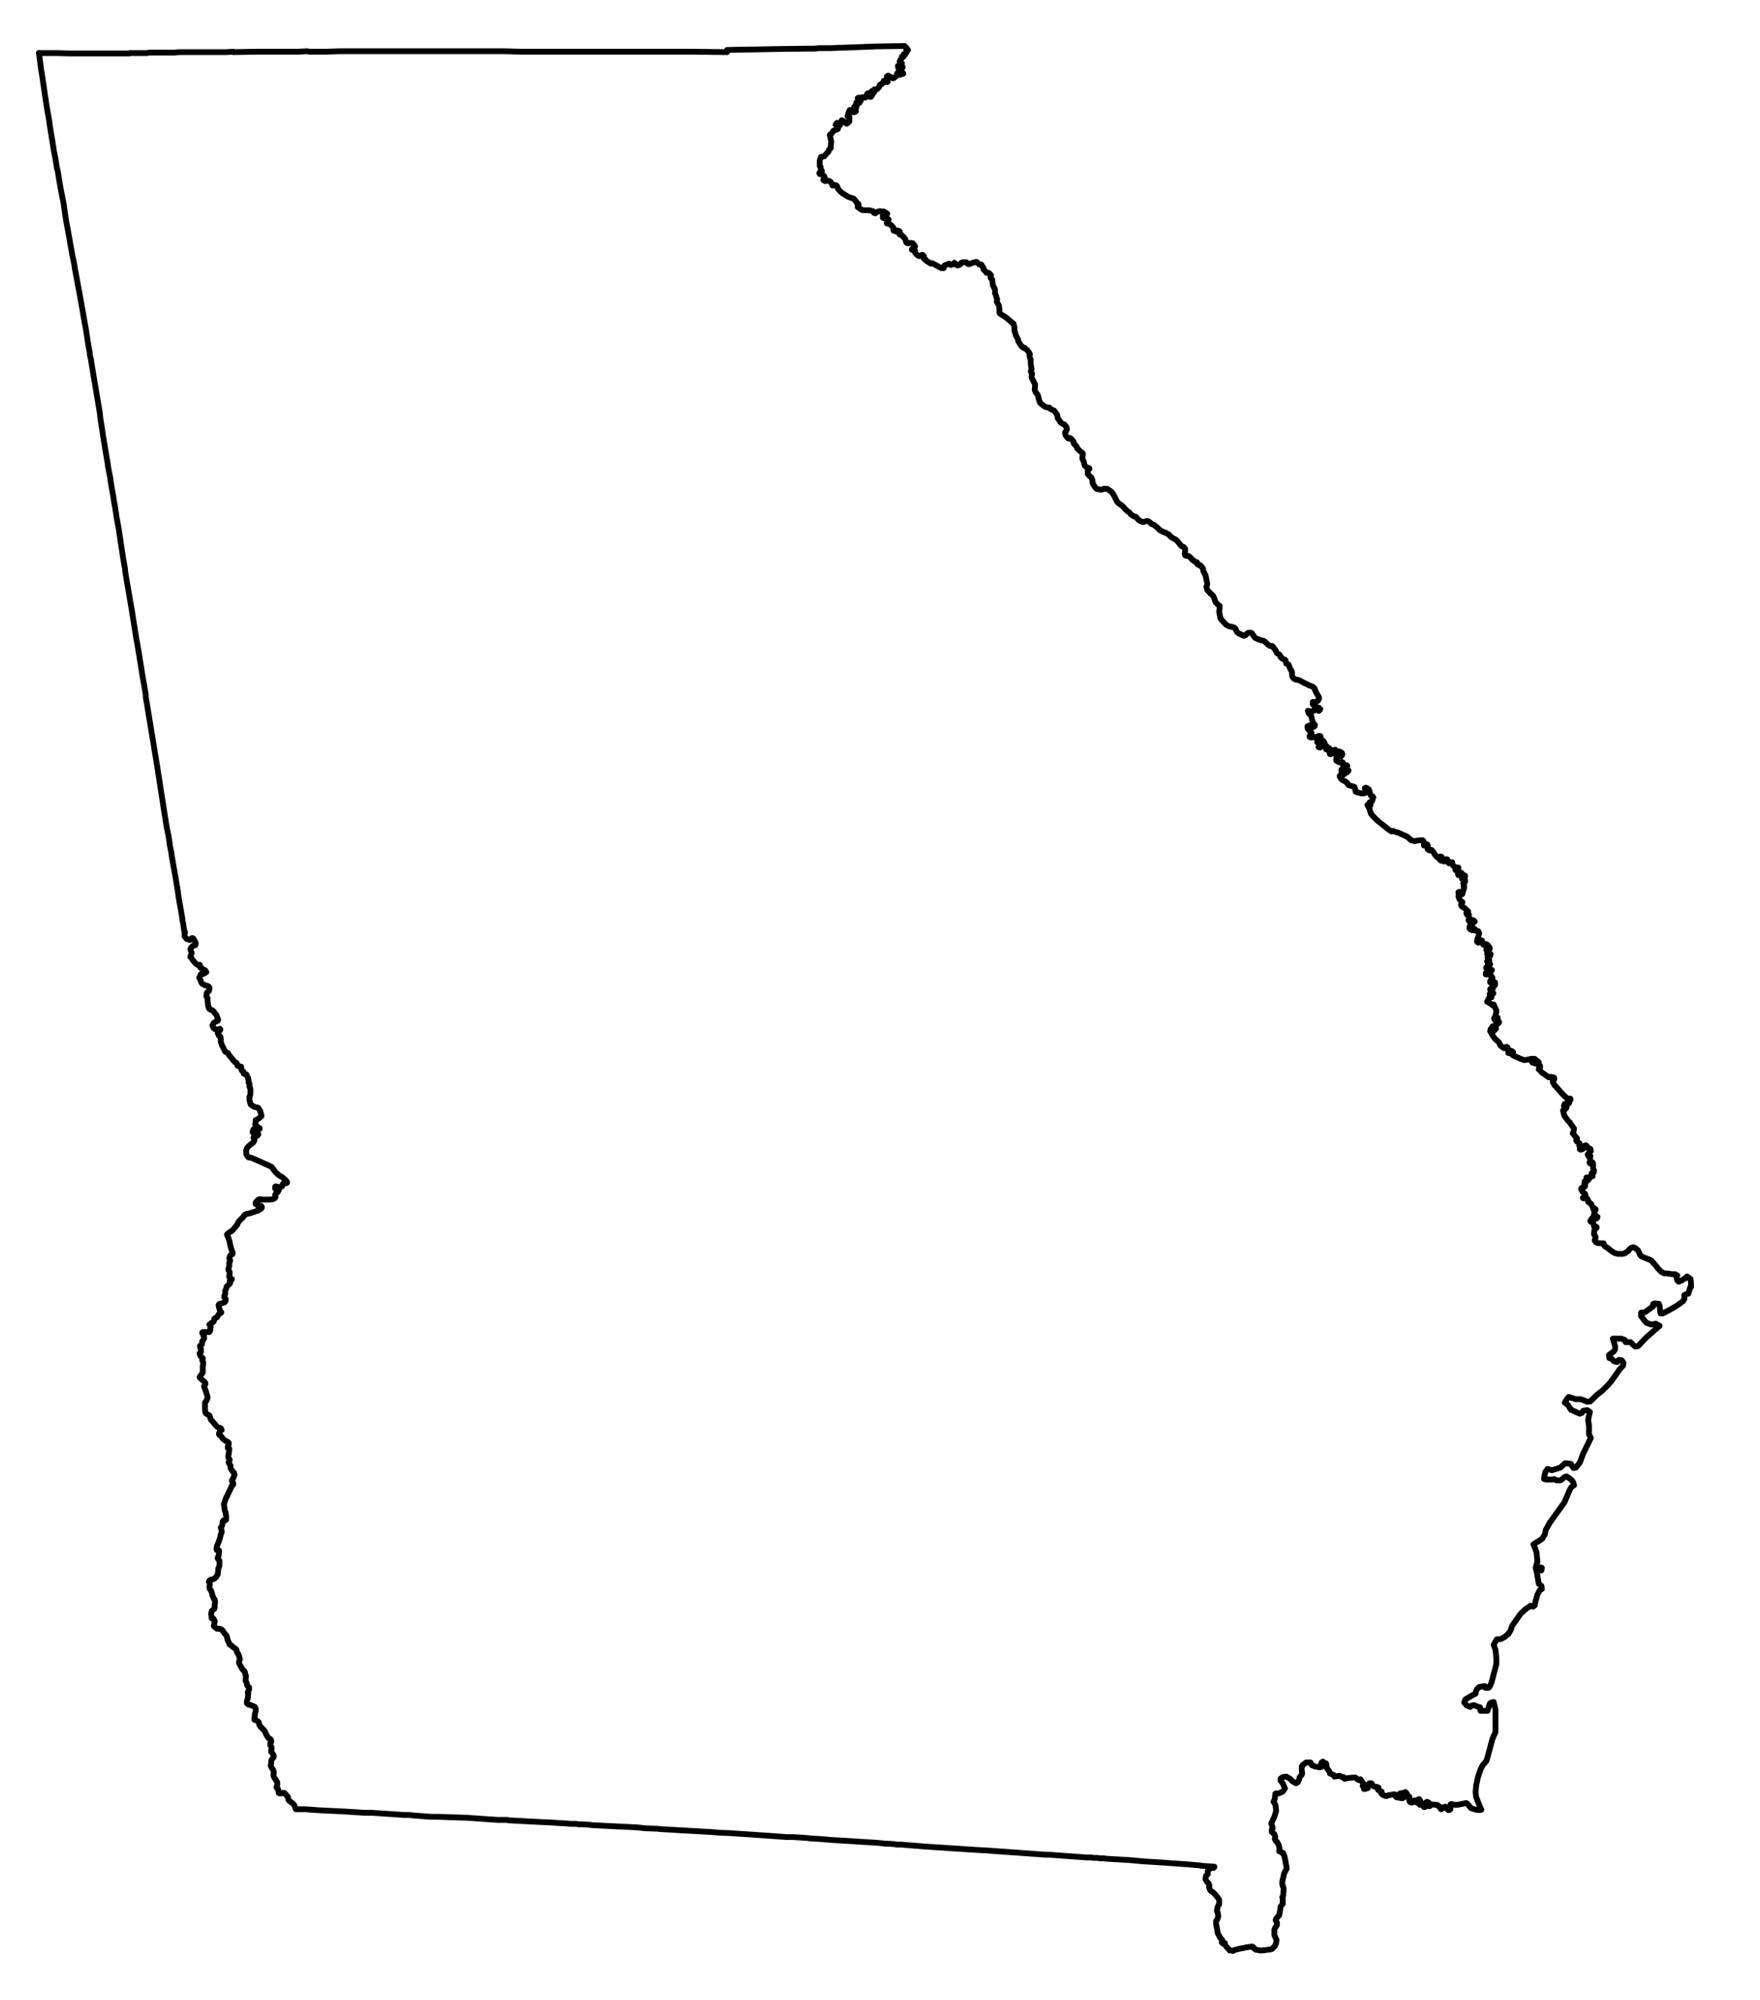 Picture of: State Outlines Blank Maps Of The 50 United States Gis Geography